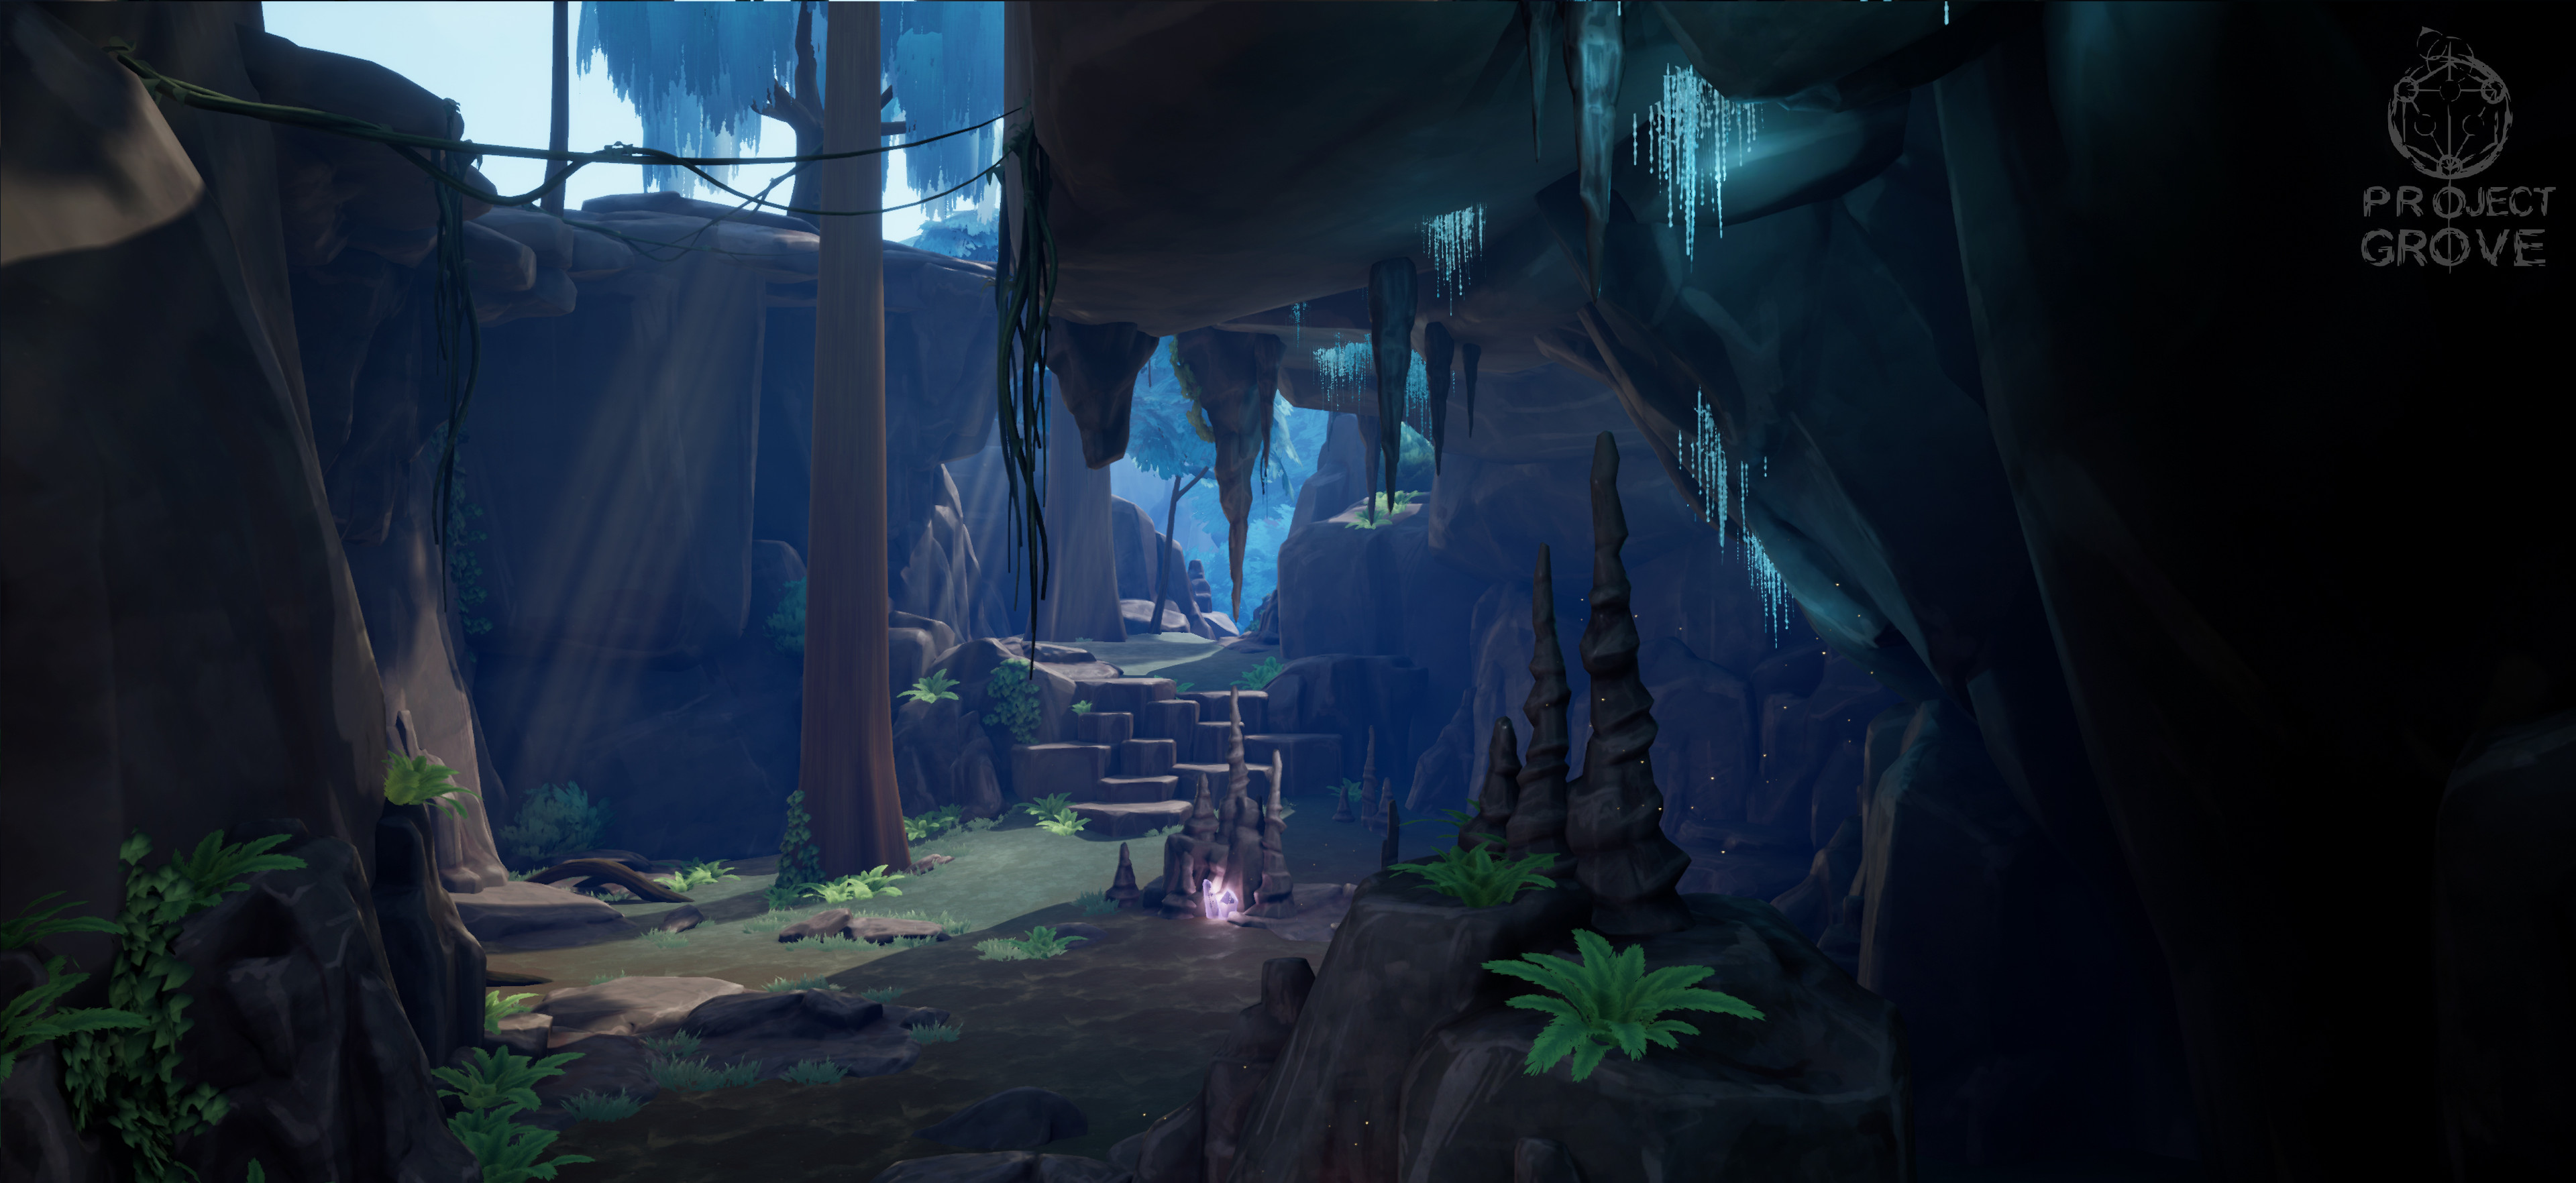 3D environment I put together with the assets I made. Here I'm using a lot of different light sources to light the cave, like the glow worms and glowing crystals.